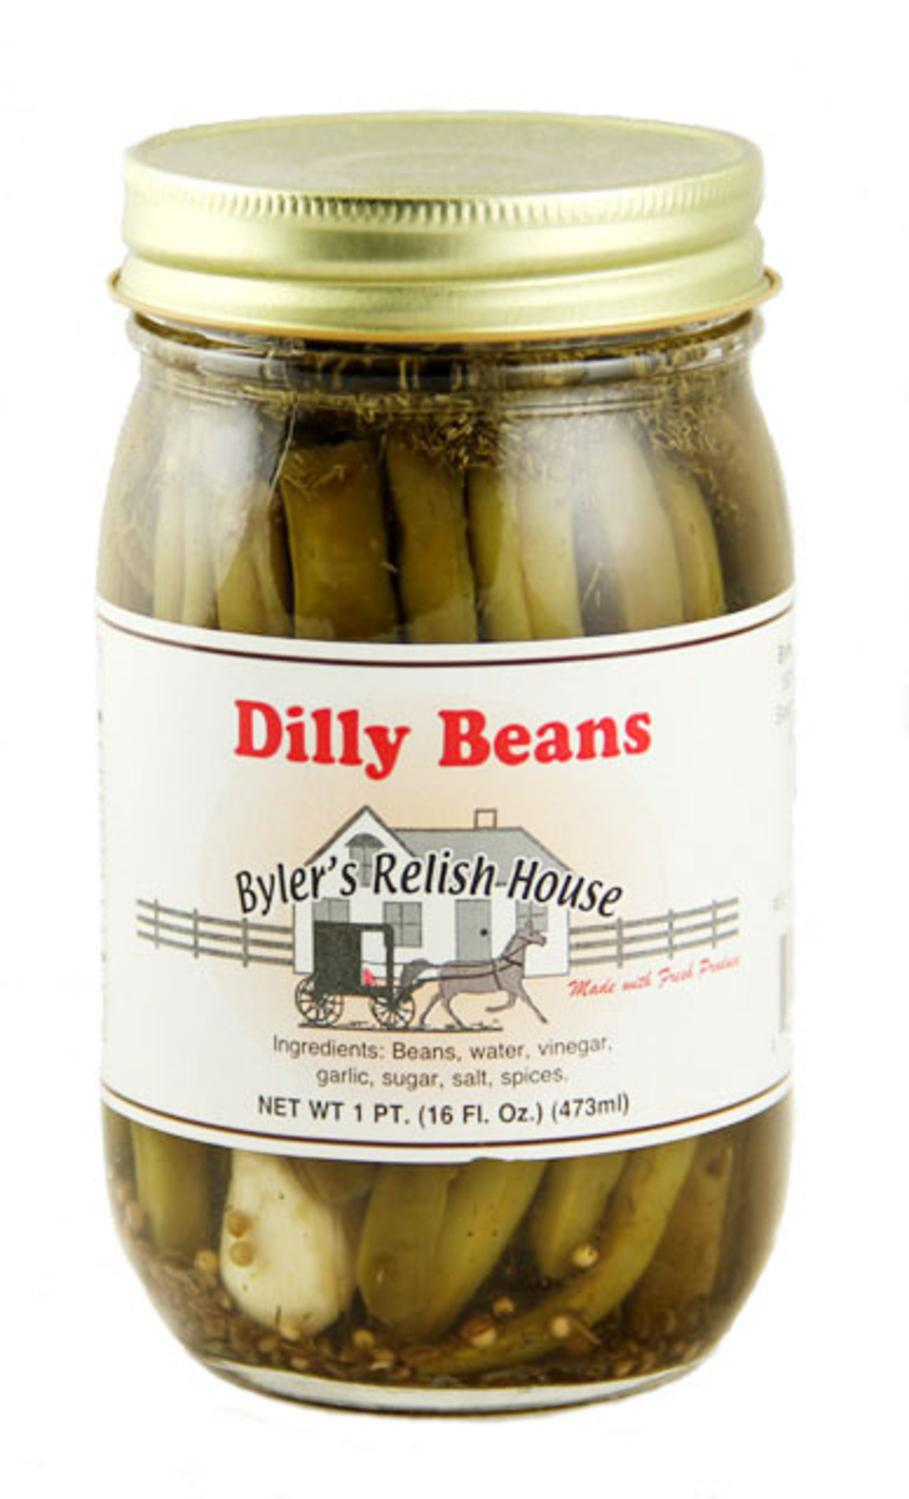 Byler's Relish House Homemade Amish Country Dilly Beans 16 oz. by Byler's Relish House